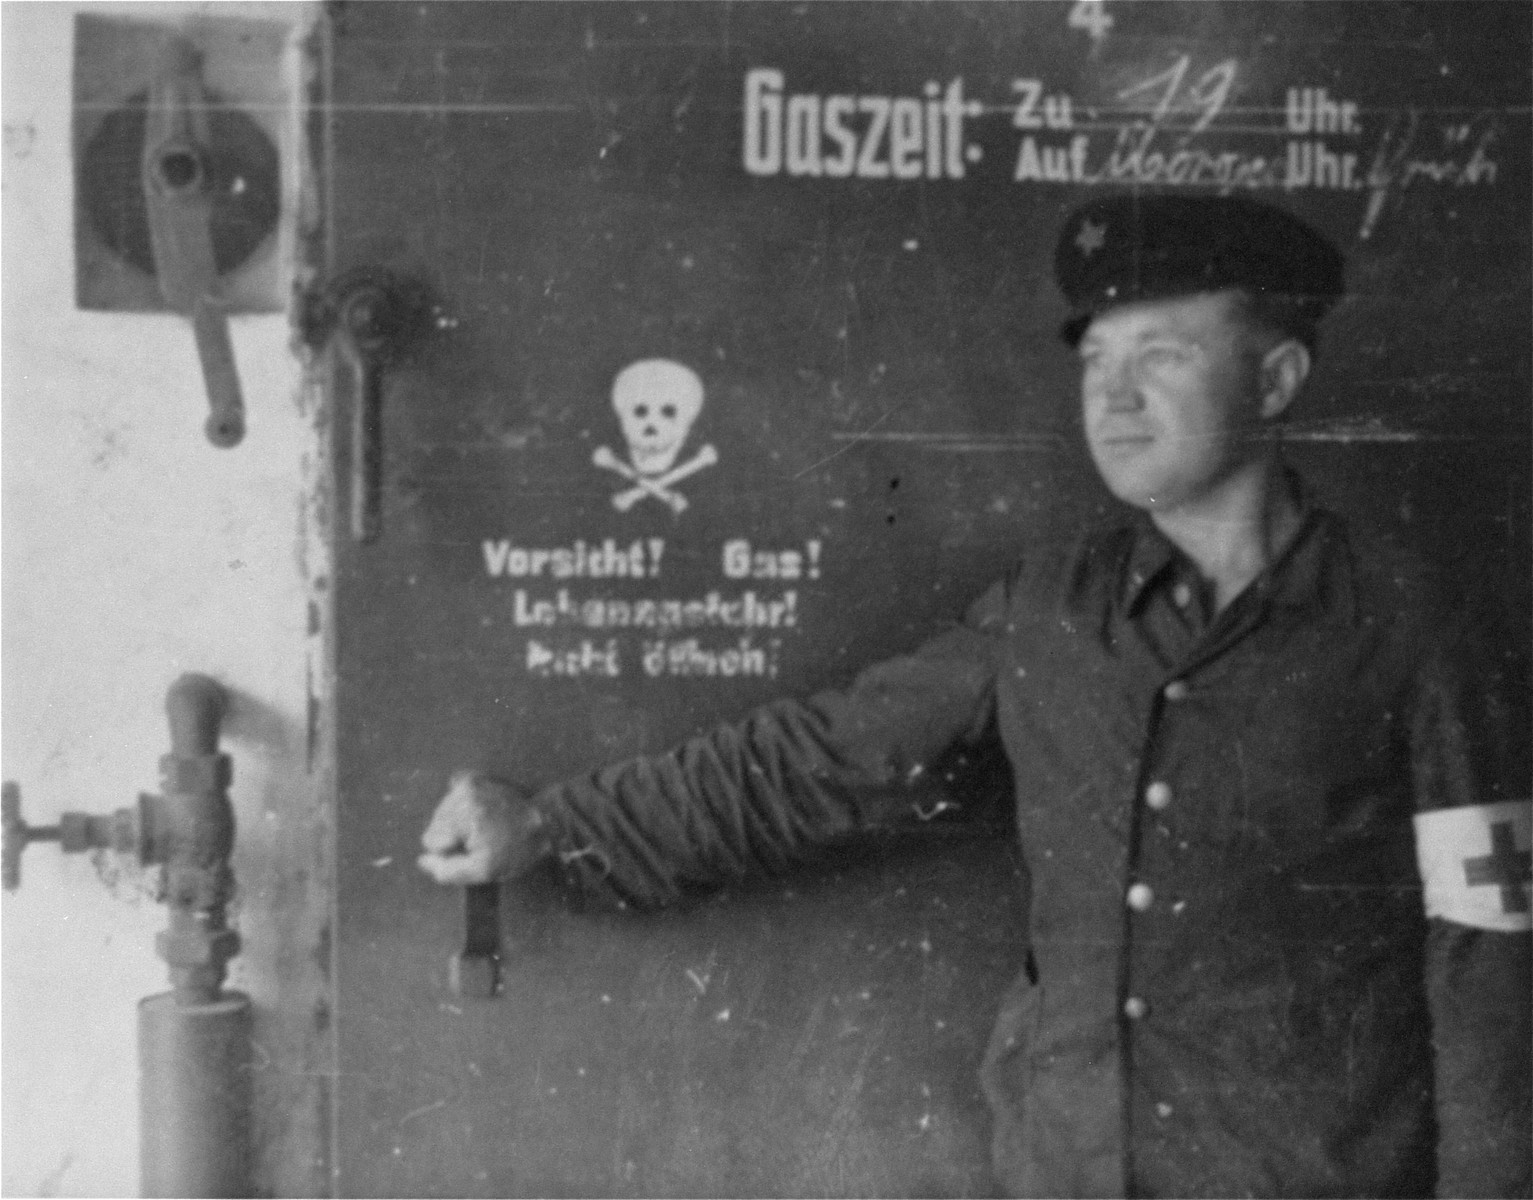 A survivor, probably Yugoslavian due to the red star on his cap, stands by the door of the Gas chamber in Dachau.